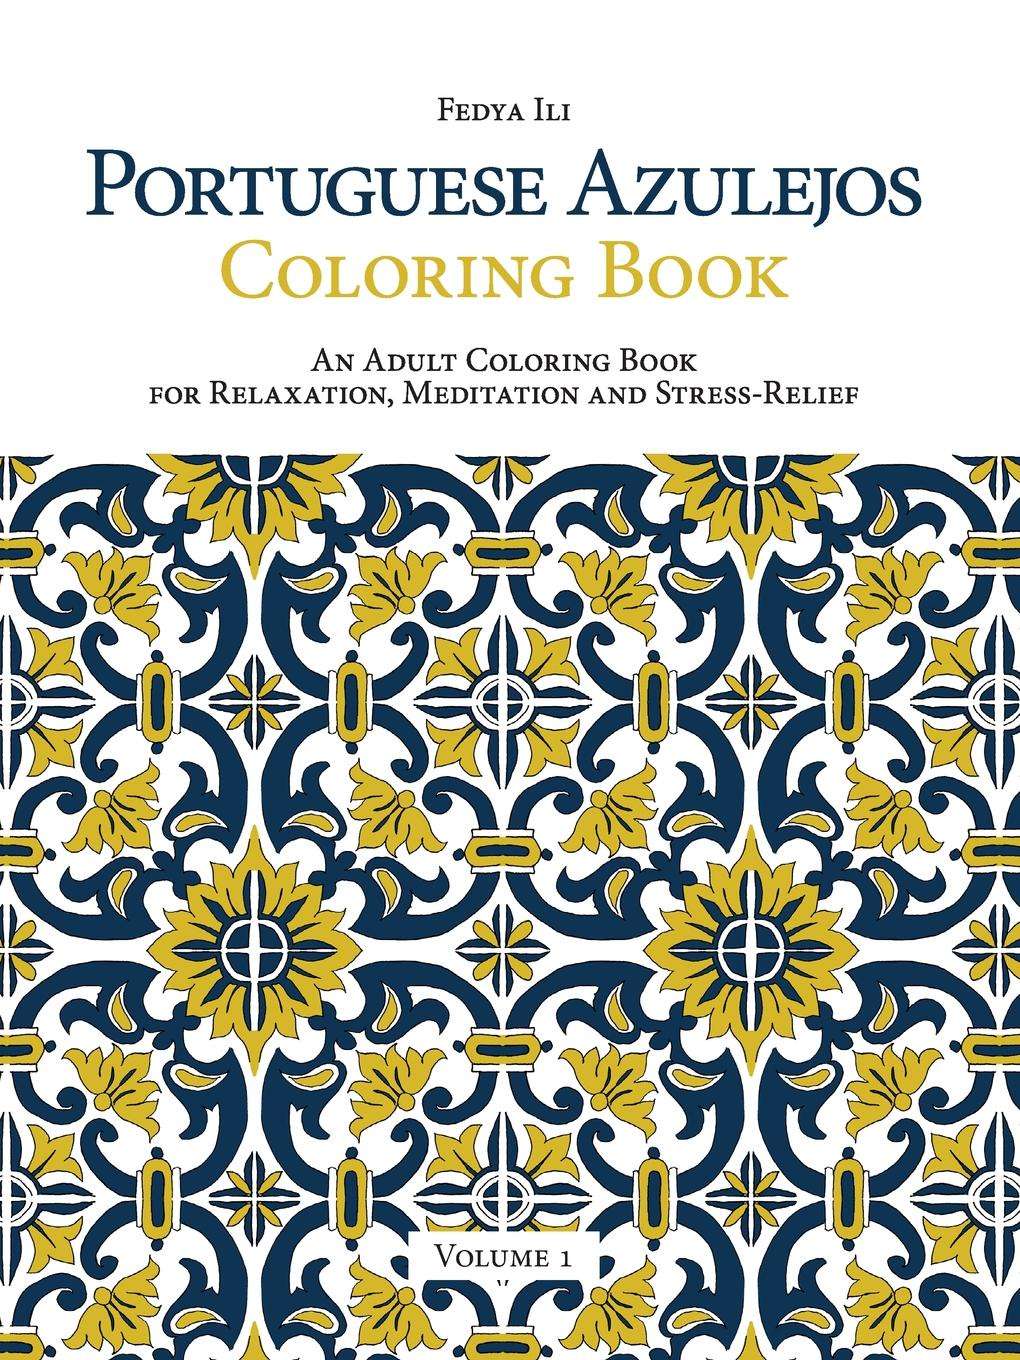 Fedya Ili Portuguese Azulejos Coloring Book. An Adult Coloring Book for Relaxation, Meditation and Stress-Relief (Volume 1) 1 pc secret garden adult coloring book 96 pages 18 5 18 5cm designs stress relief coloring book garden designs mandalas